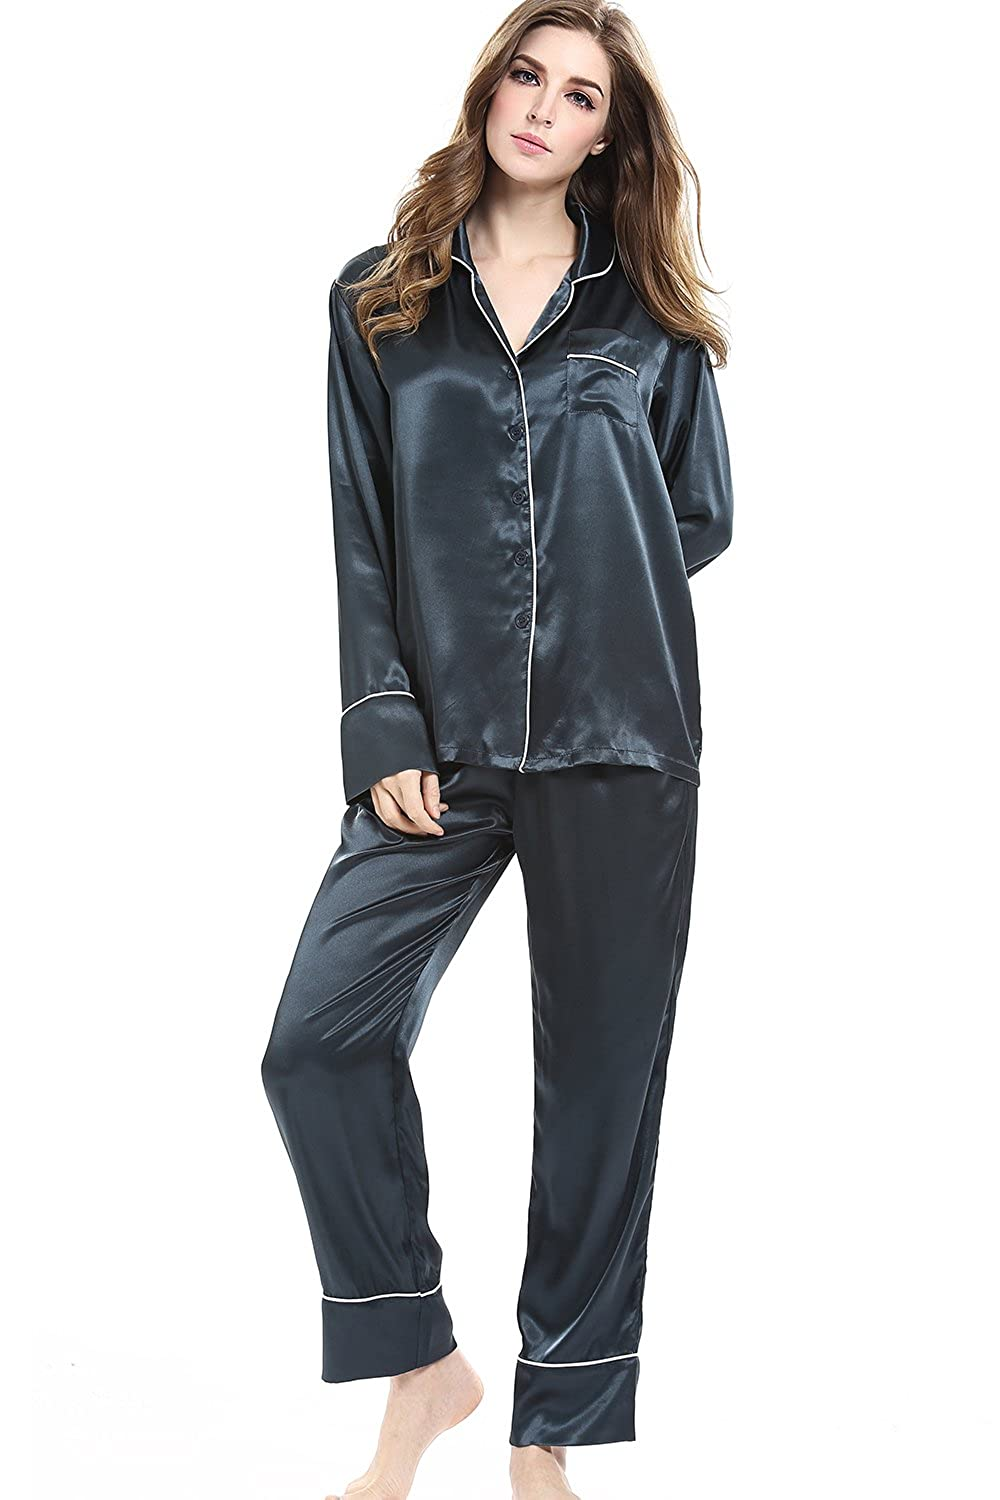 055219b379 MATERIAL: Main satin,soft and lightweight,smooth and skin-friendly sleepwear  for womens will give you a luxurious feel 【FULL BUTTON front sleep shirt  】is ...